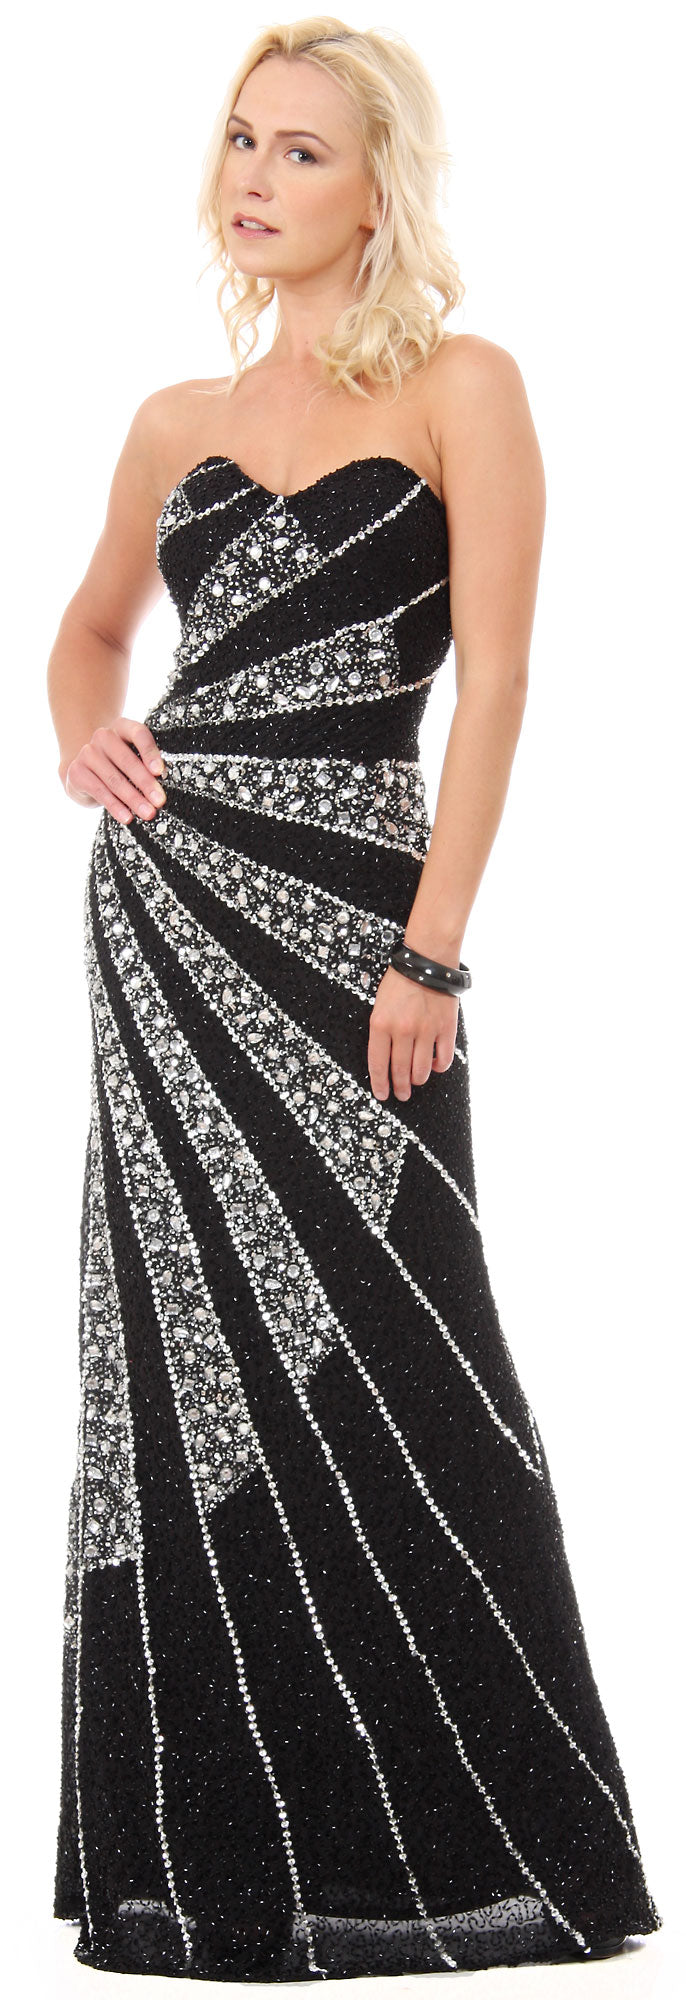 Main image of Strapless Sequins & Rhinestones Long Formal Prom Dress